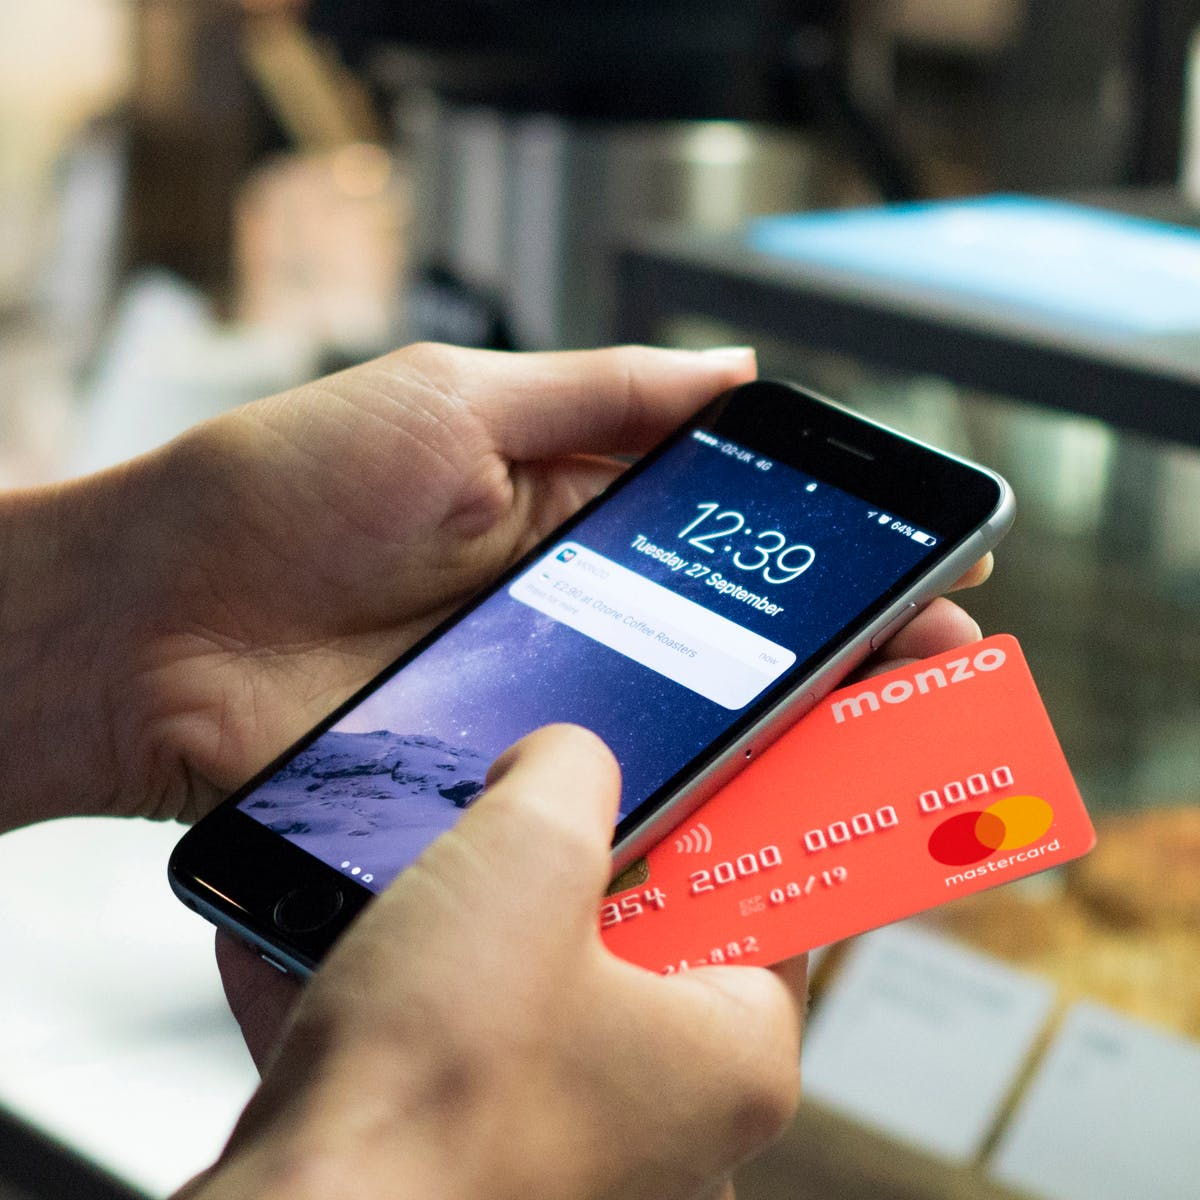 Monzo sees 'insane' growth after running first TV ad campaign